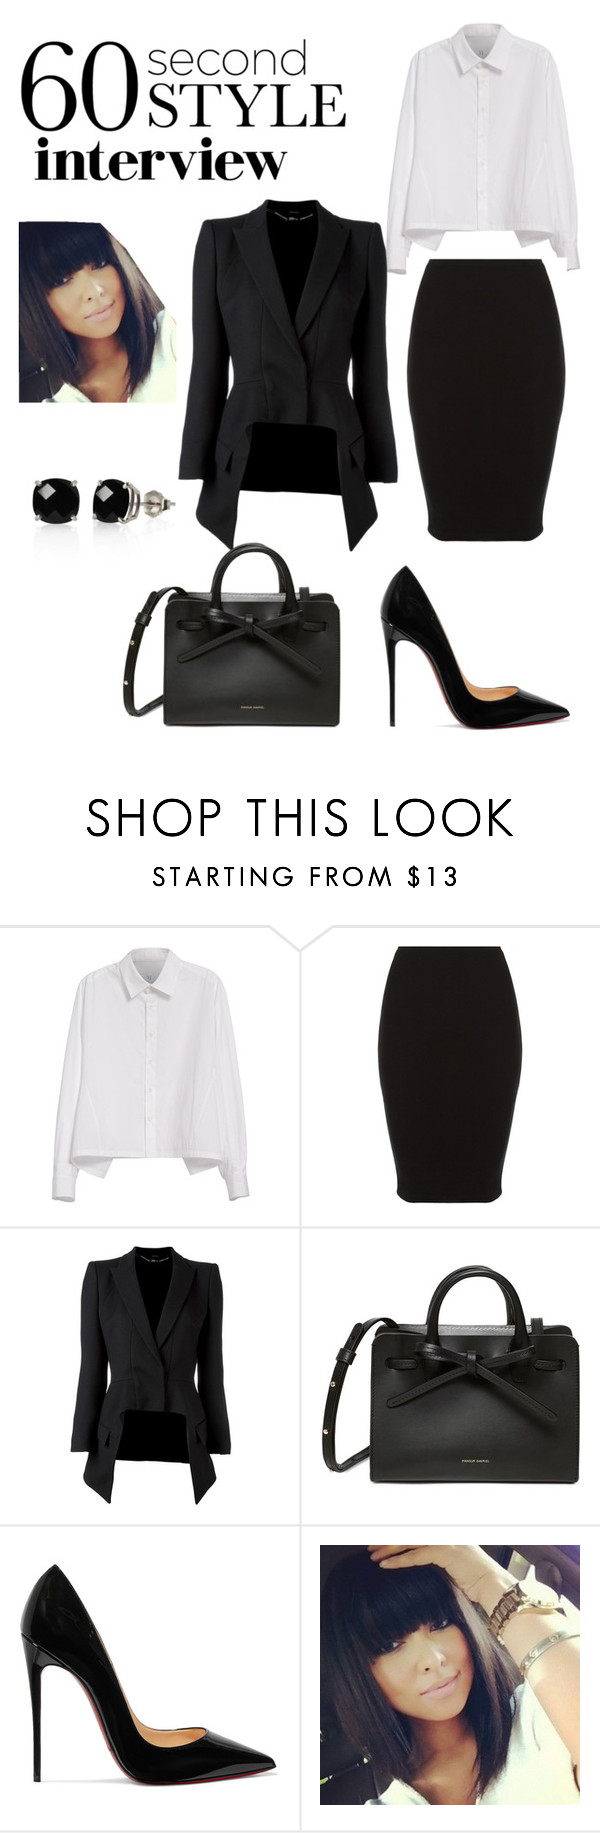 """""""60secound style job interview comp!"""" by brookeanna-1 ❤ liked on Polyvore featuring Y's by Yohji Yamamoto, Alexander McQueen, Christian Louboutin, Belk & Co., jobinterview and 60secondstyle"""